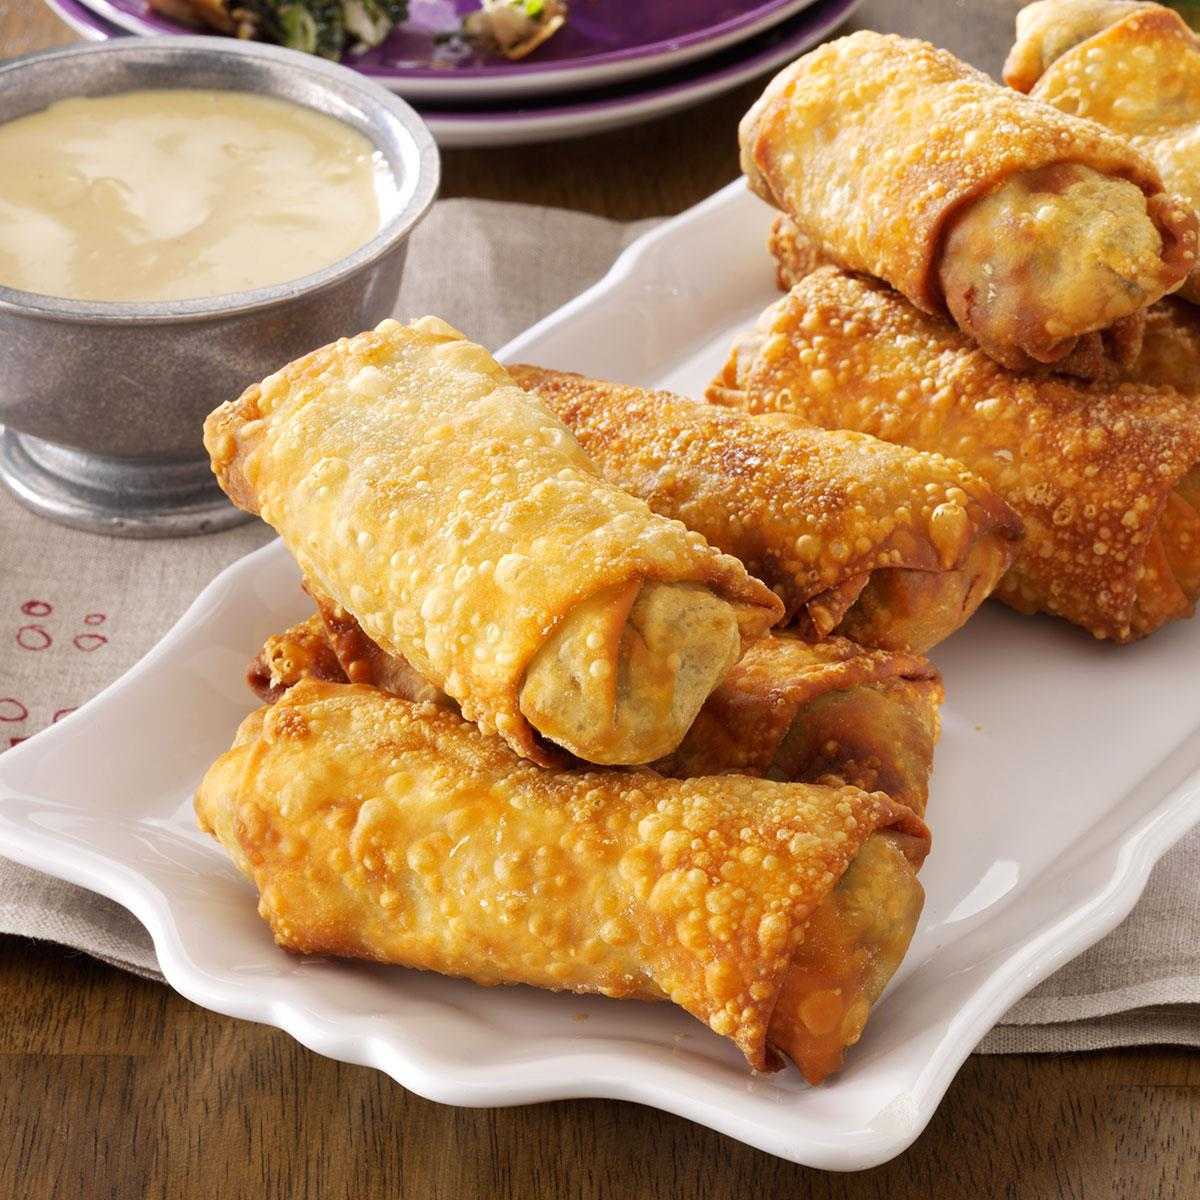 38 Cool Finger Foods For Your Next Party: Southern-Style Egg Rolls Recipe